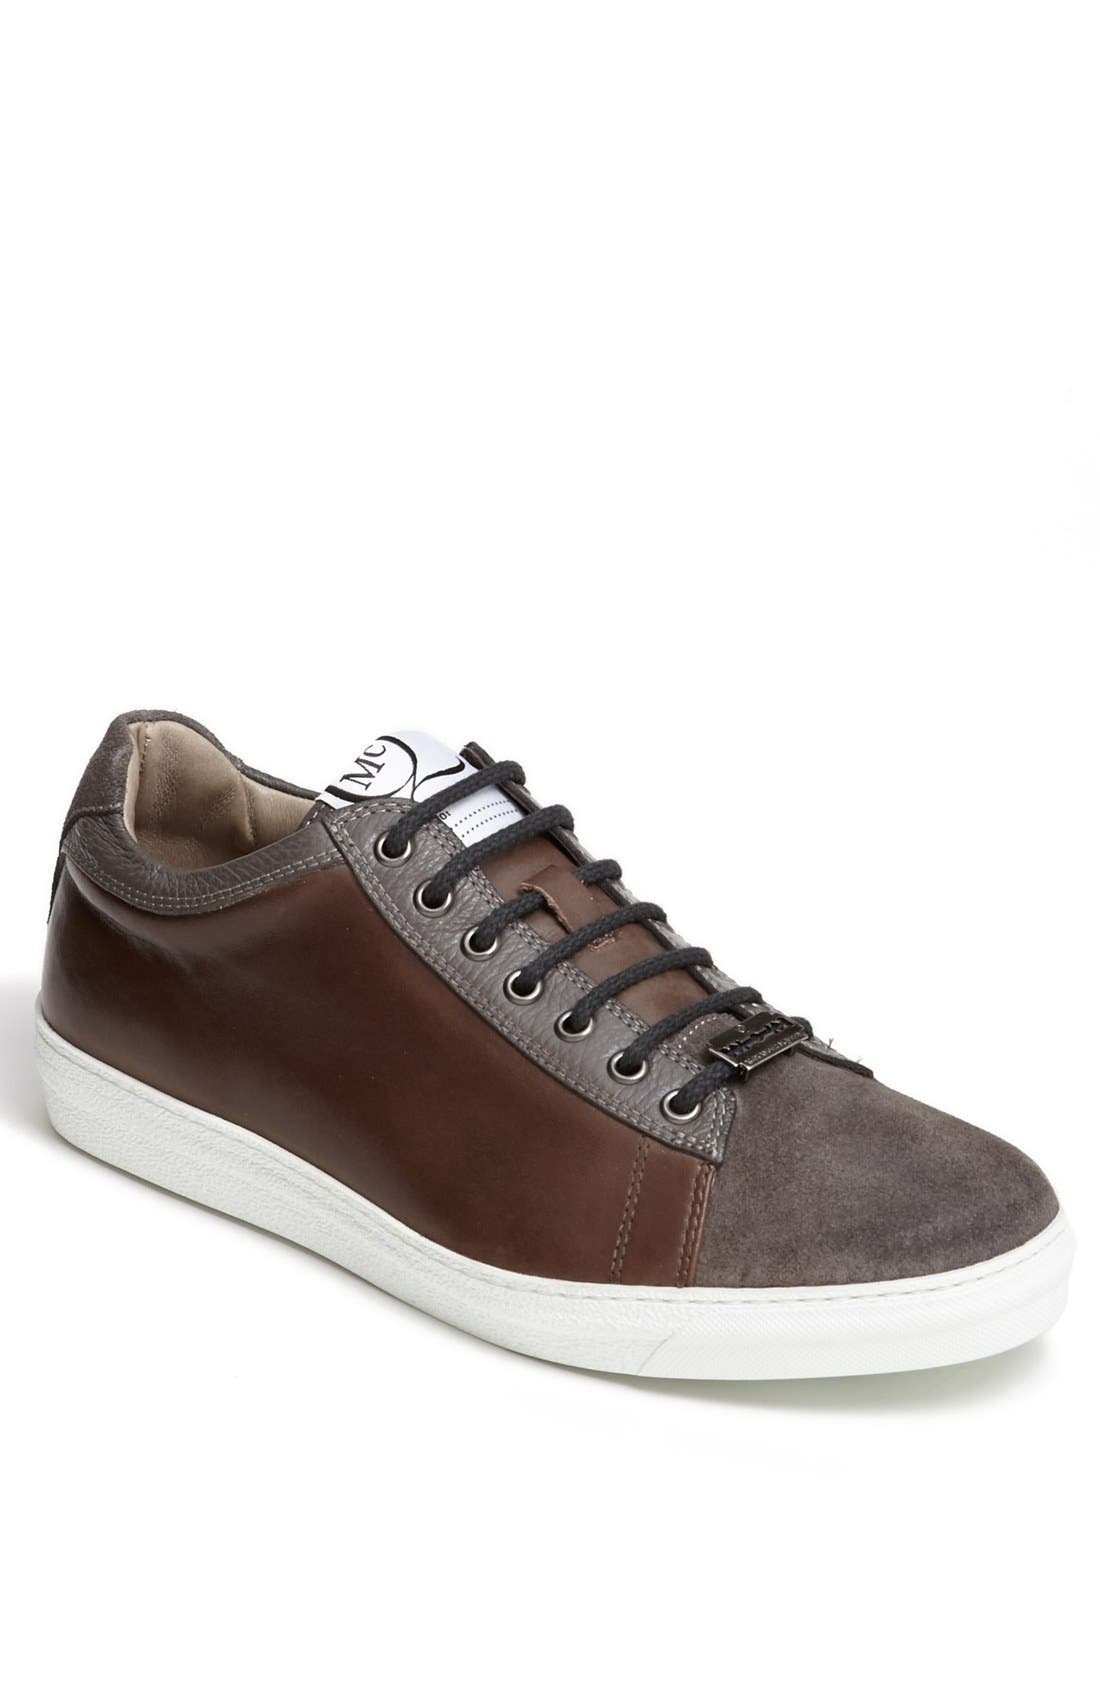 Alternate Image 1 Selected - McQ by Alexander McQueen Low Cut Sneaker